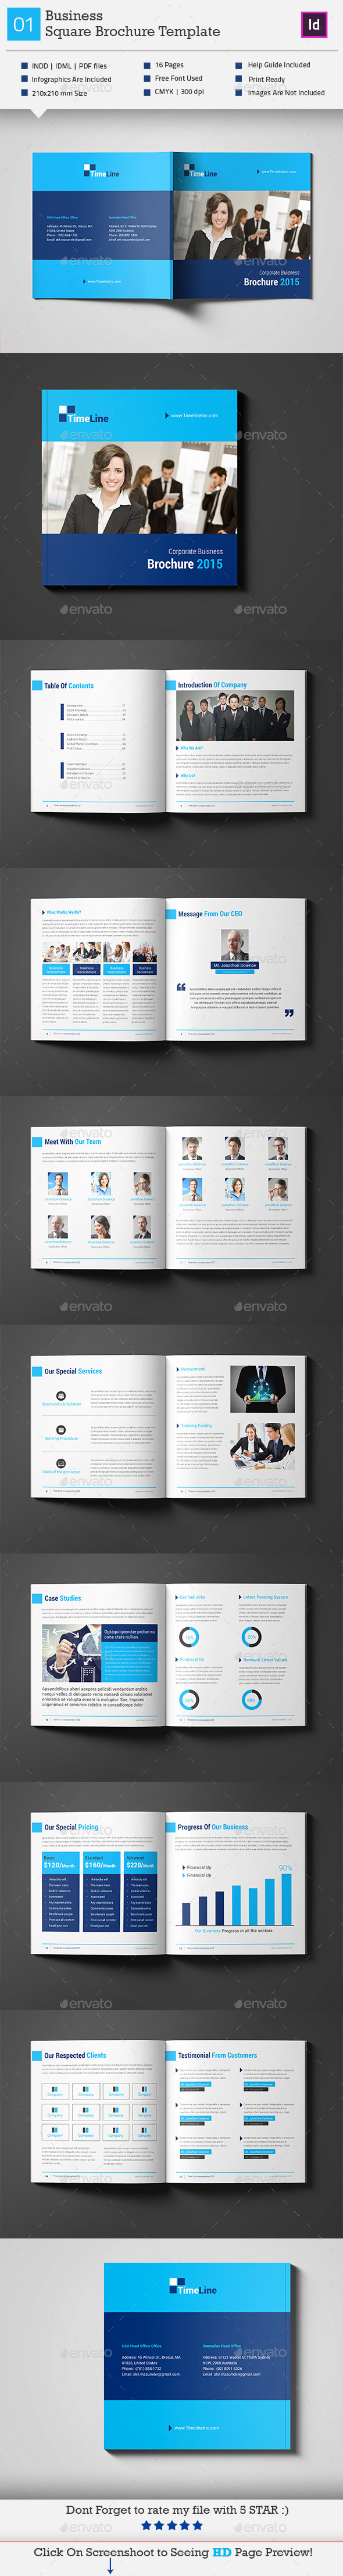 GraphicRiver Business Square Brochure Template V2 11251825